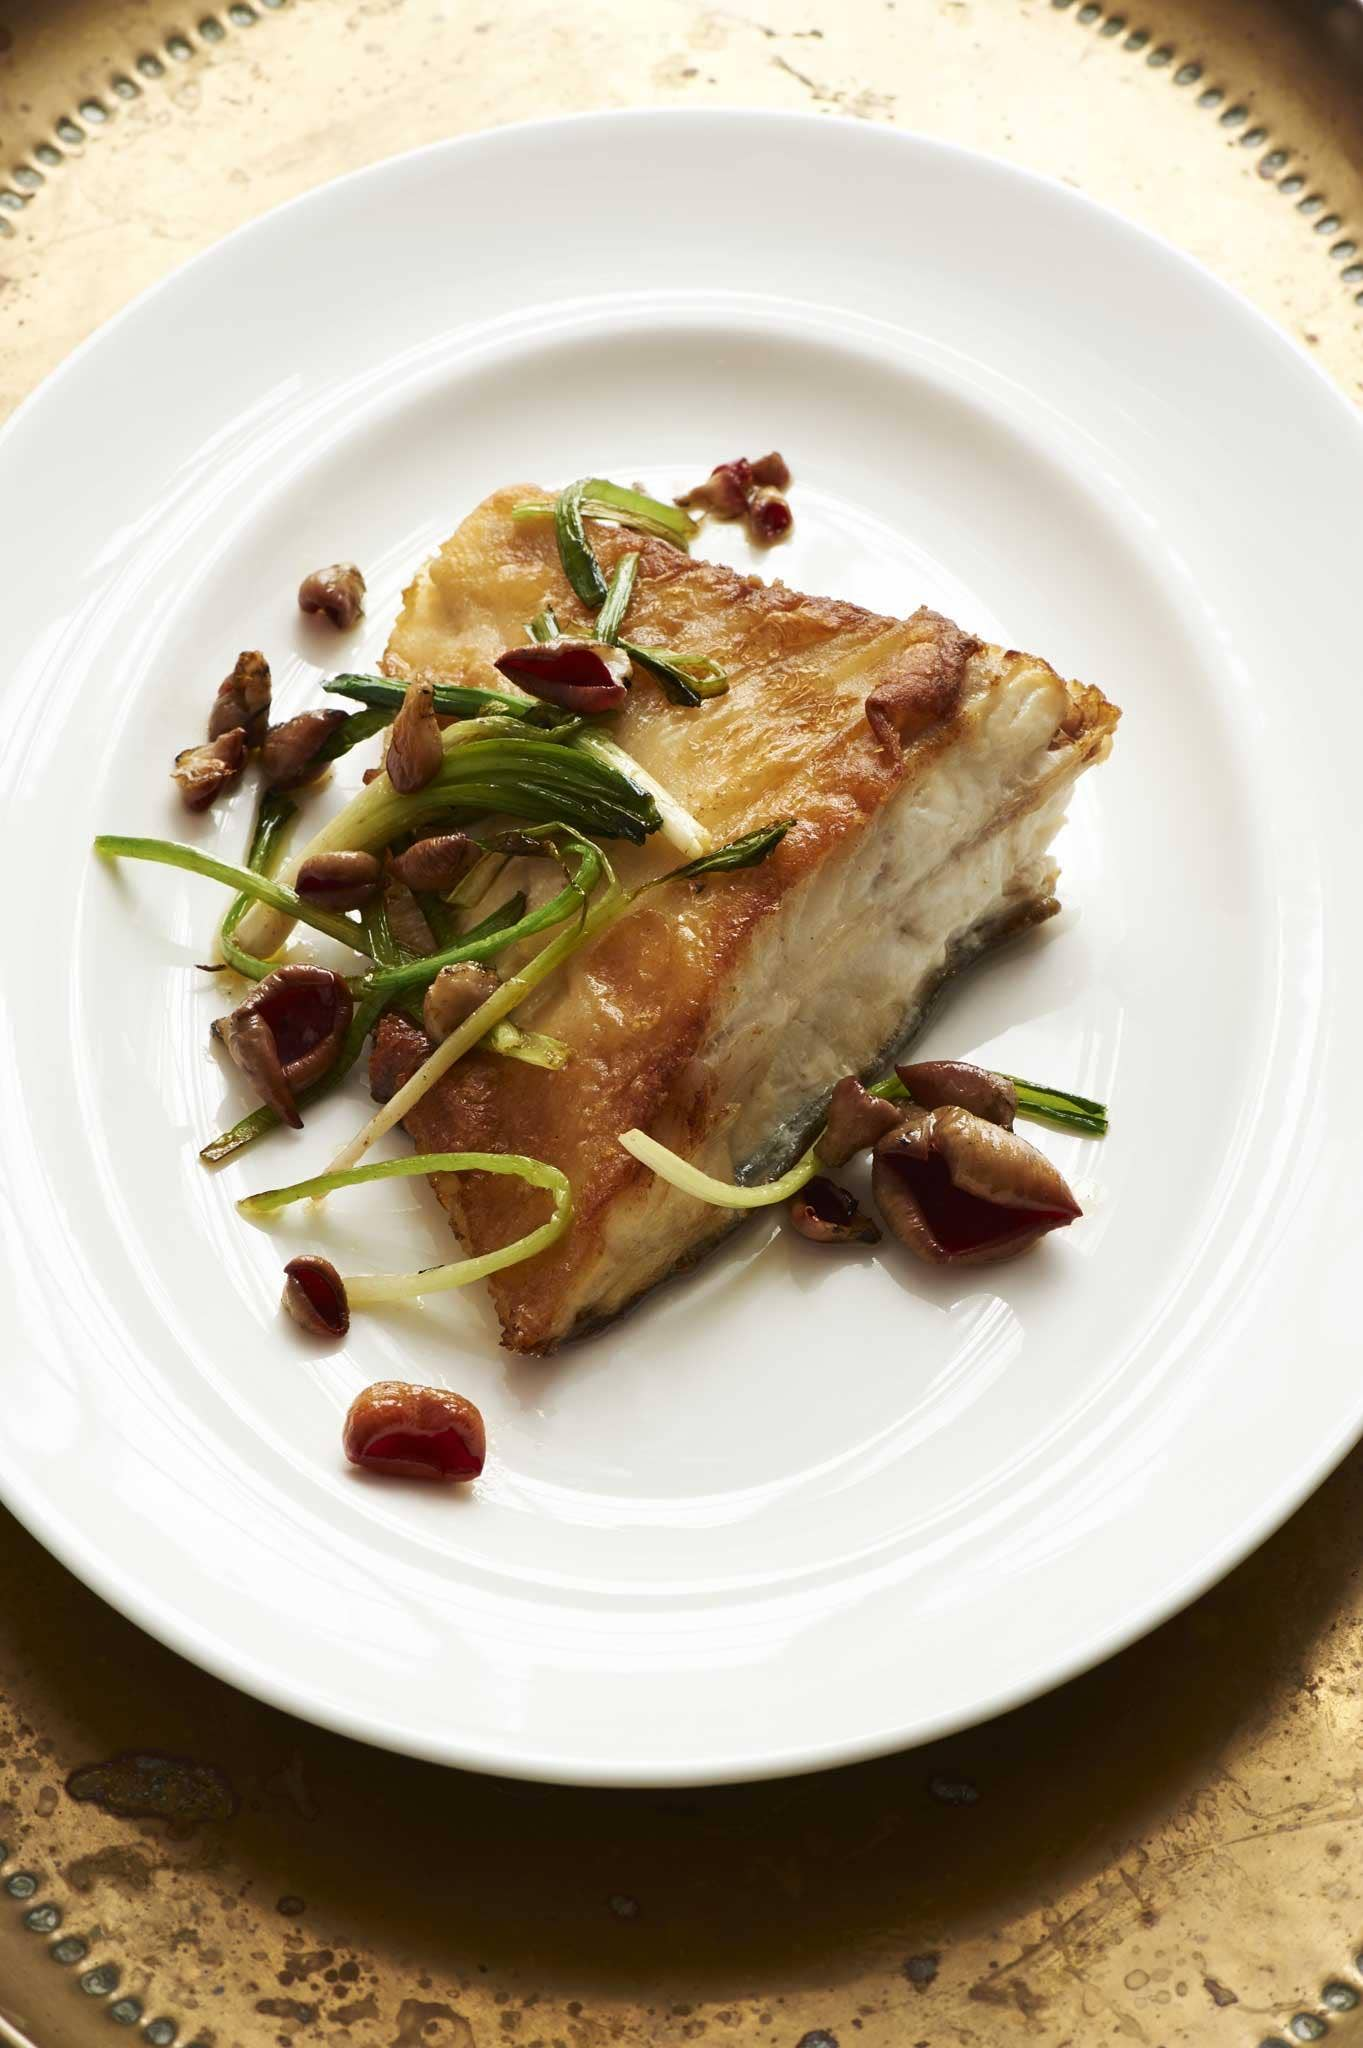 Roast turbot with garlic shoots and scarlet elf cups